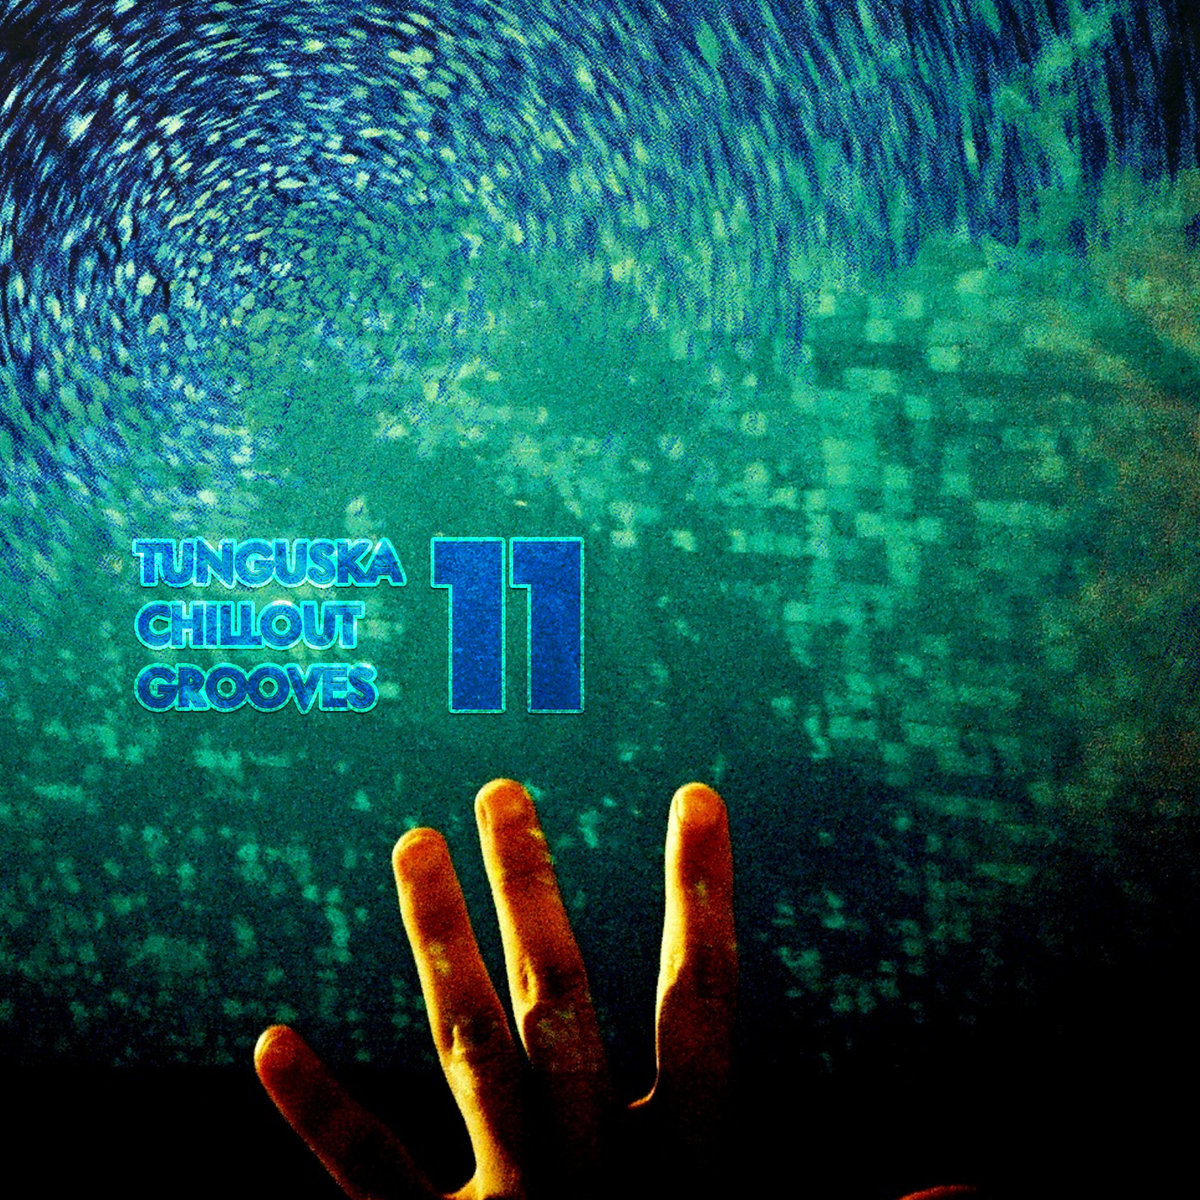 Jane Ray - Where the Rain is Born @ 'Tunguska Chillout Grooves - Volume 11' album (electronic, ambient)